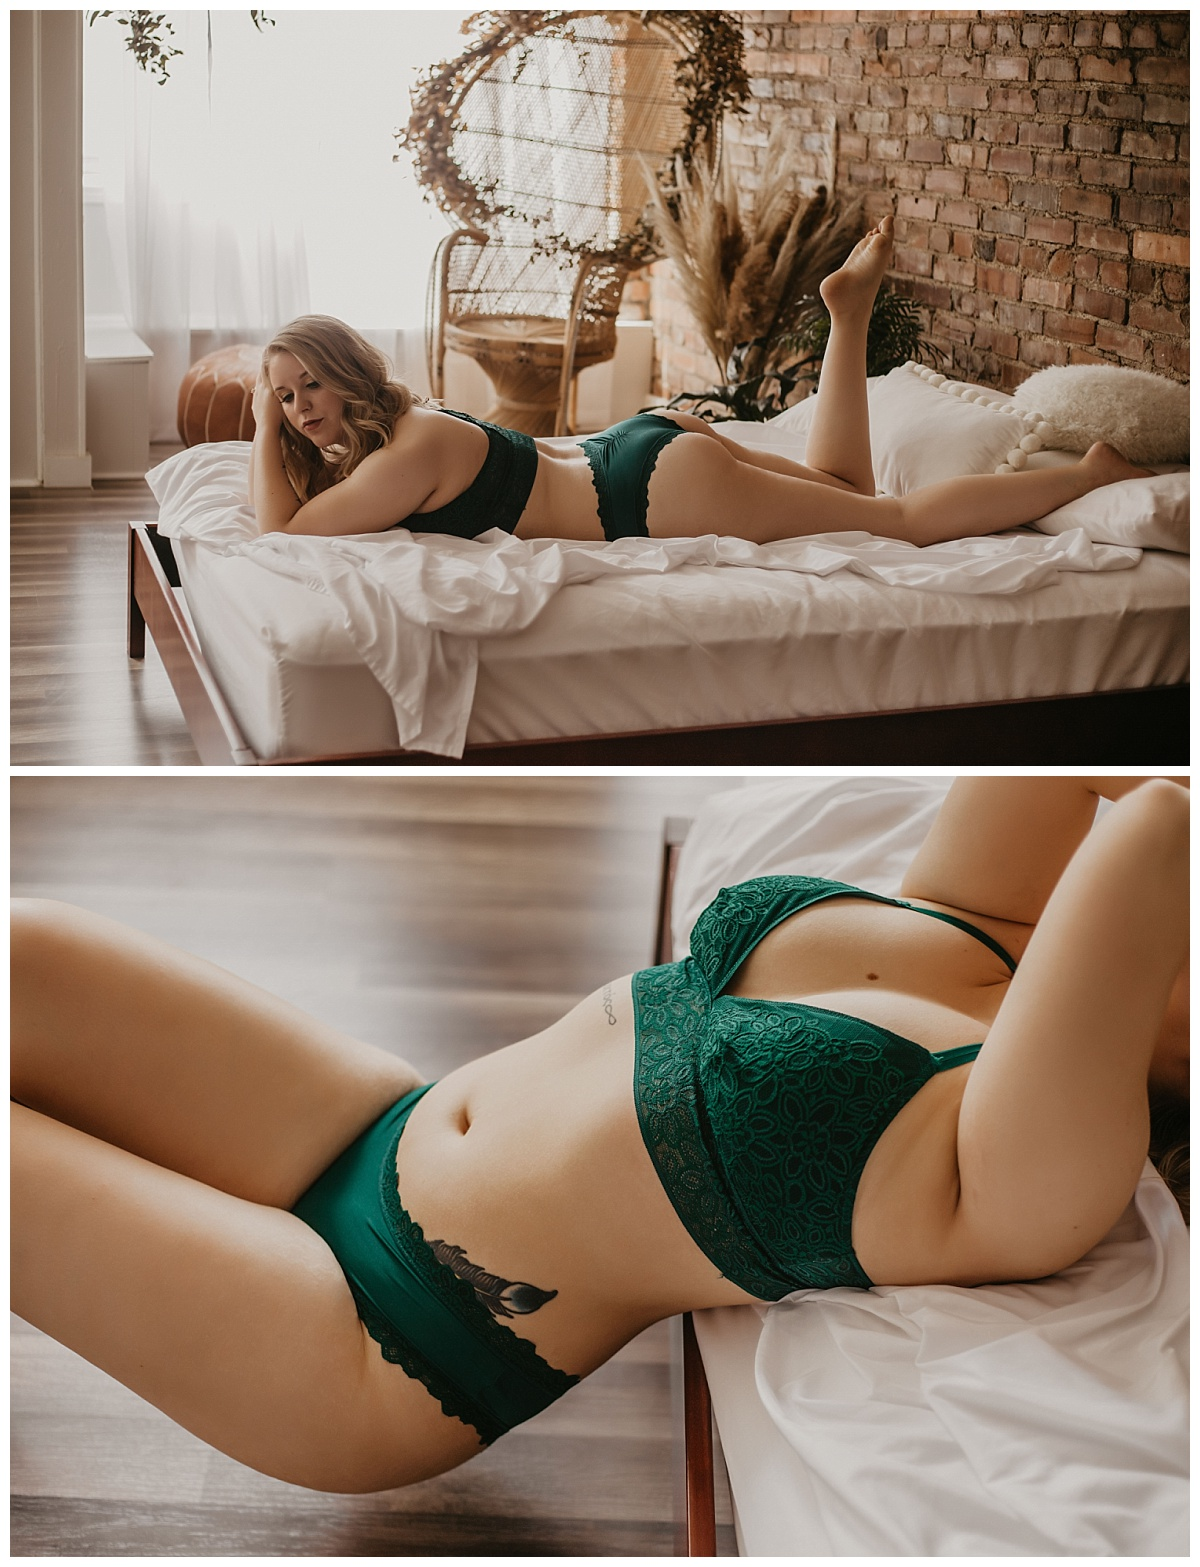 Kansas City Boudoir Photography | Kansas City Portrait Photography | San Diego Boudoir Photographer | Natural Light Boudoir